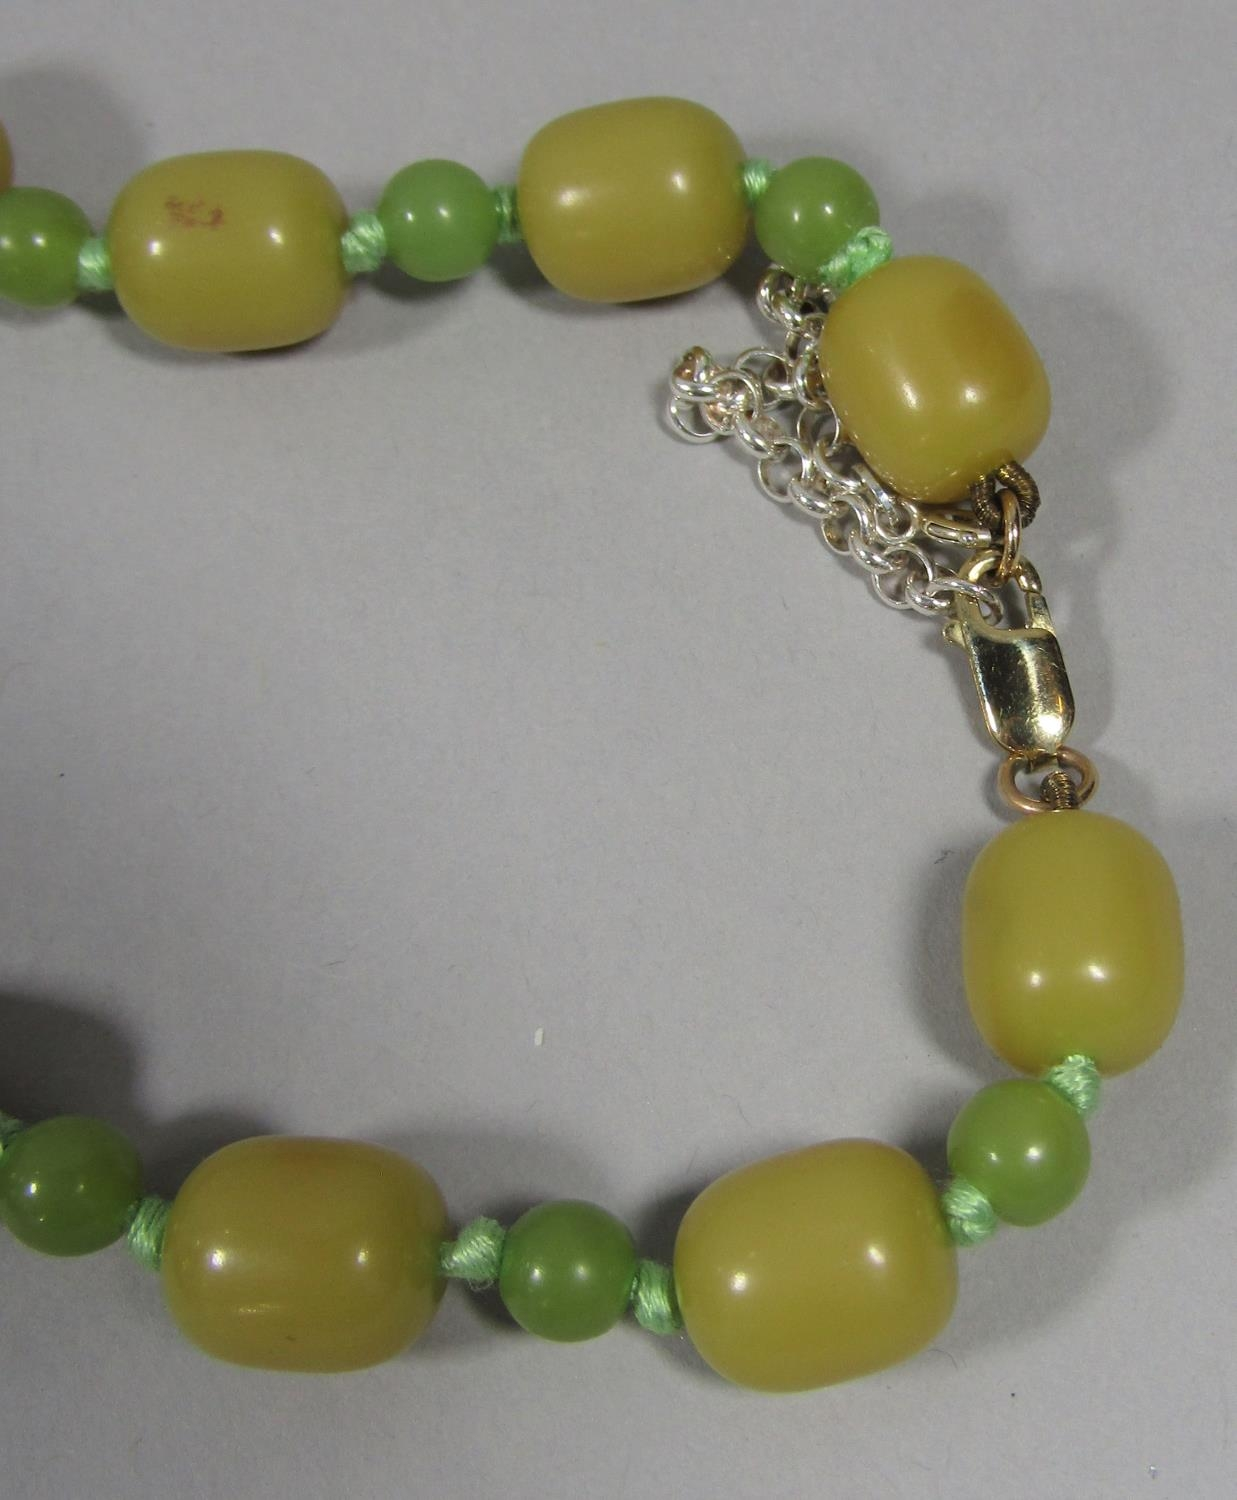 Phenolic green bead necklace with later 9ct clasp and a further graduated carnelian bead necklace - Image 3 of 3